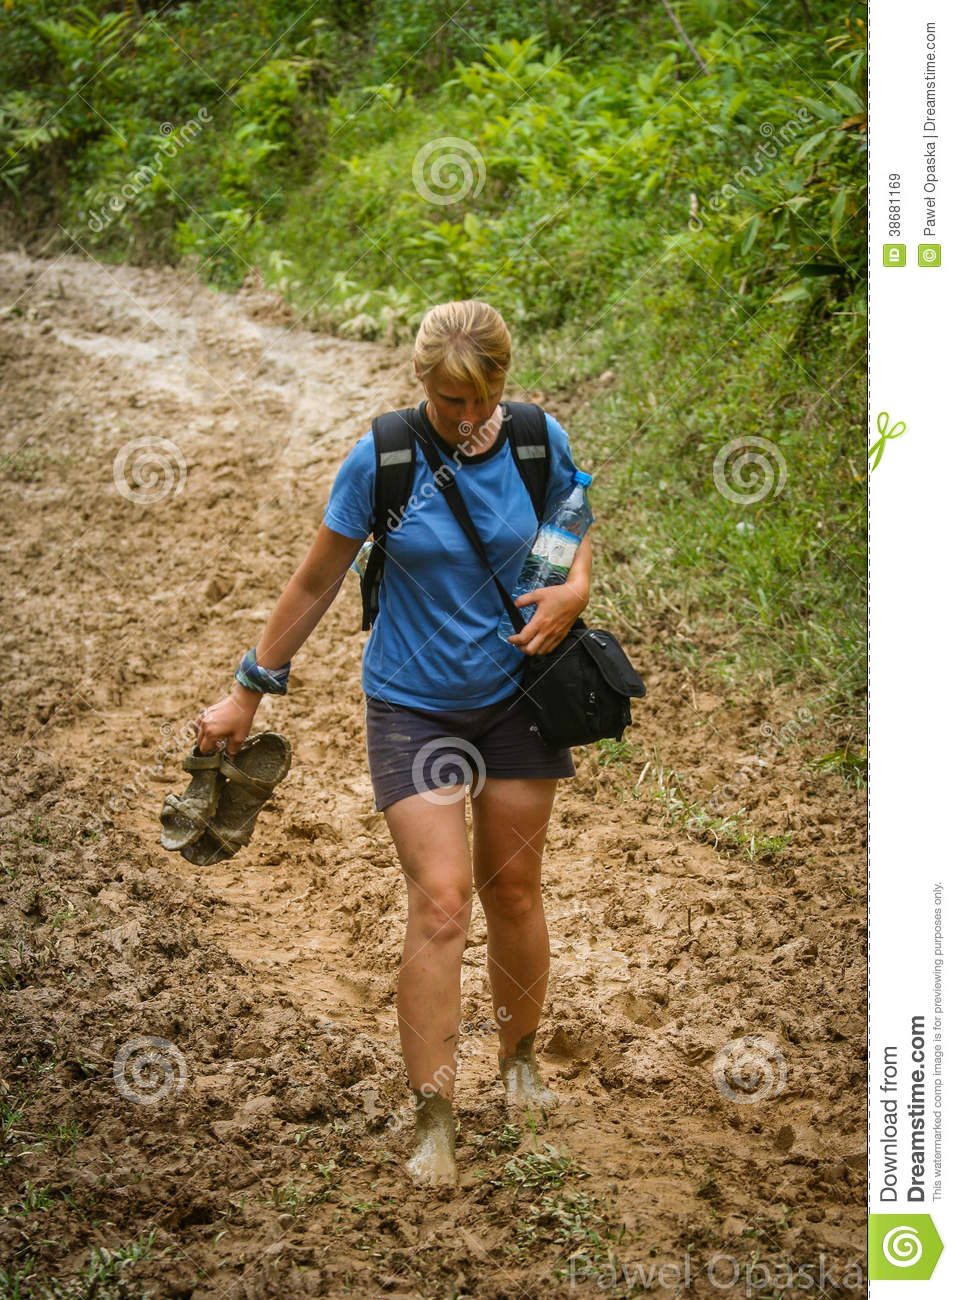 Woman Trail Running In Mountains Stock Images - Image